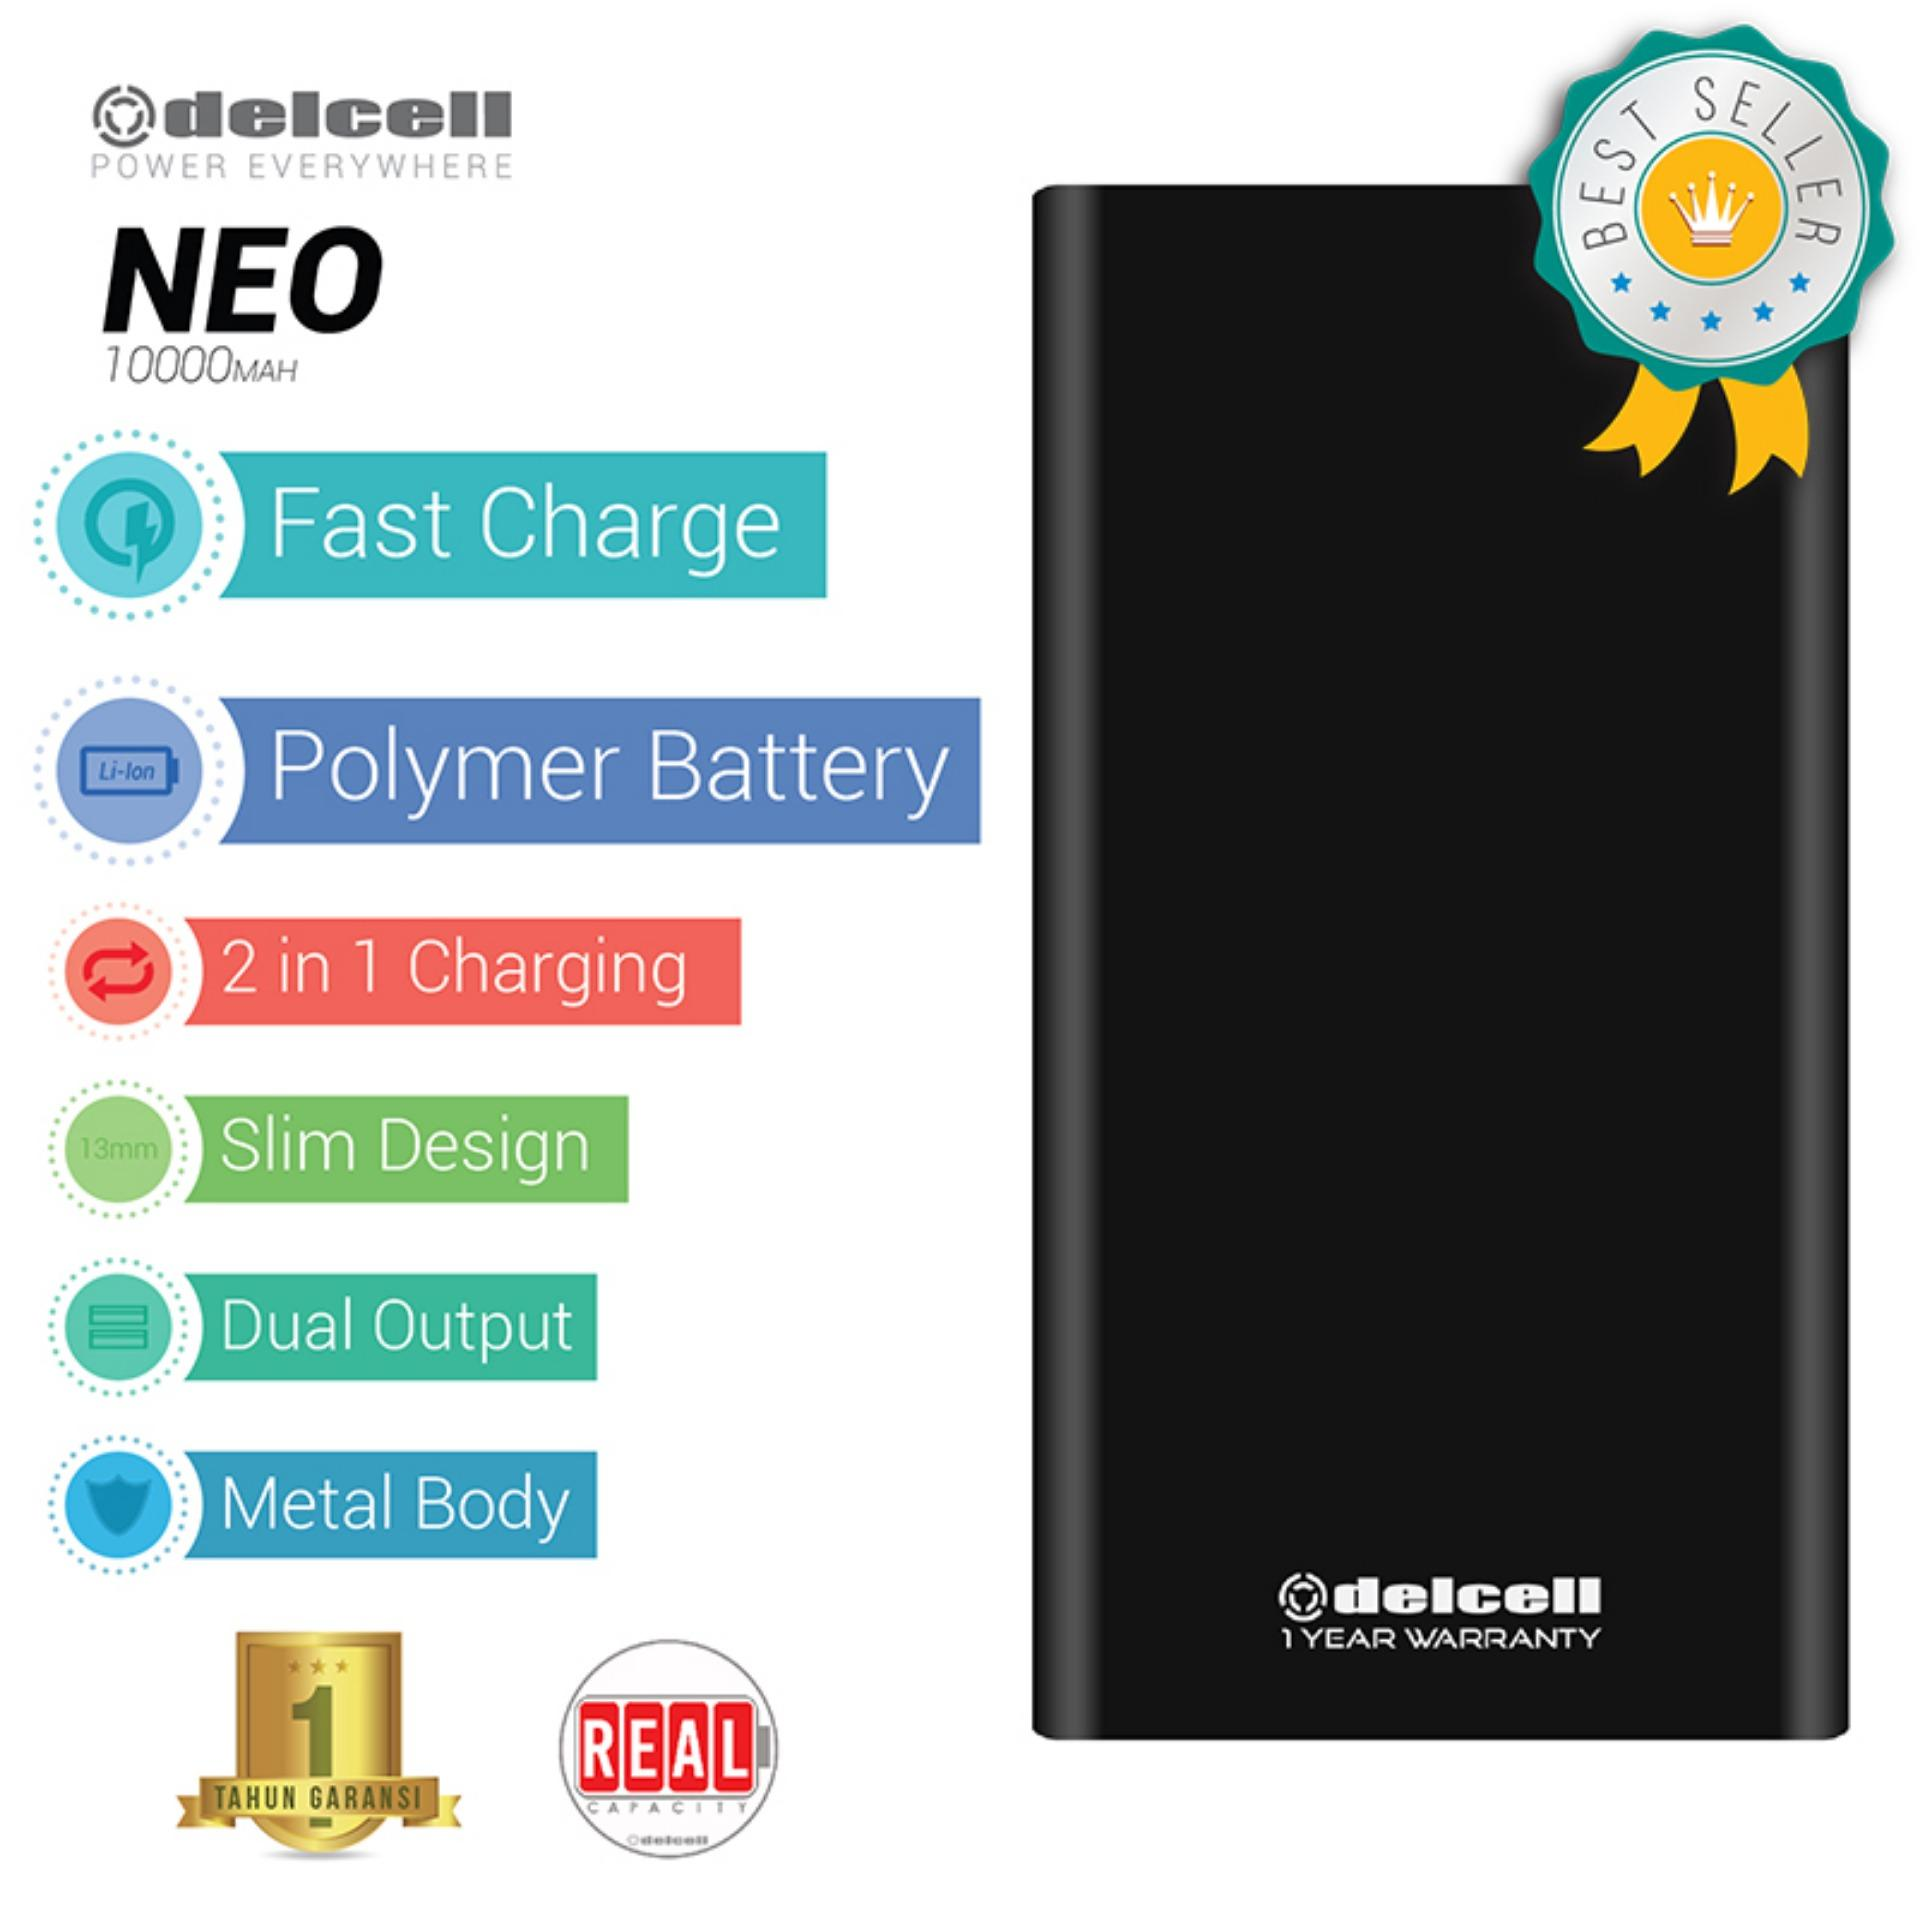 Delcell NEO Powerbank 10000mAh Real Capacity Fast Charging Polymer Battery - Black